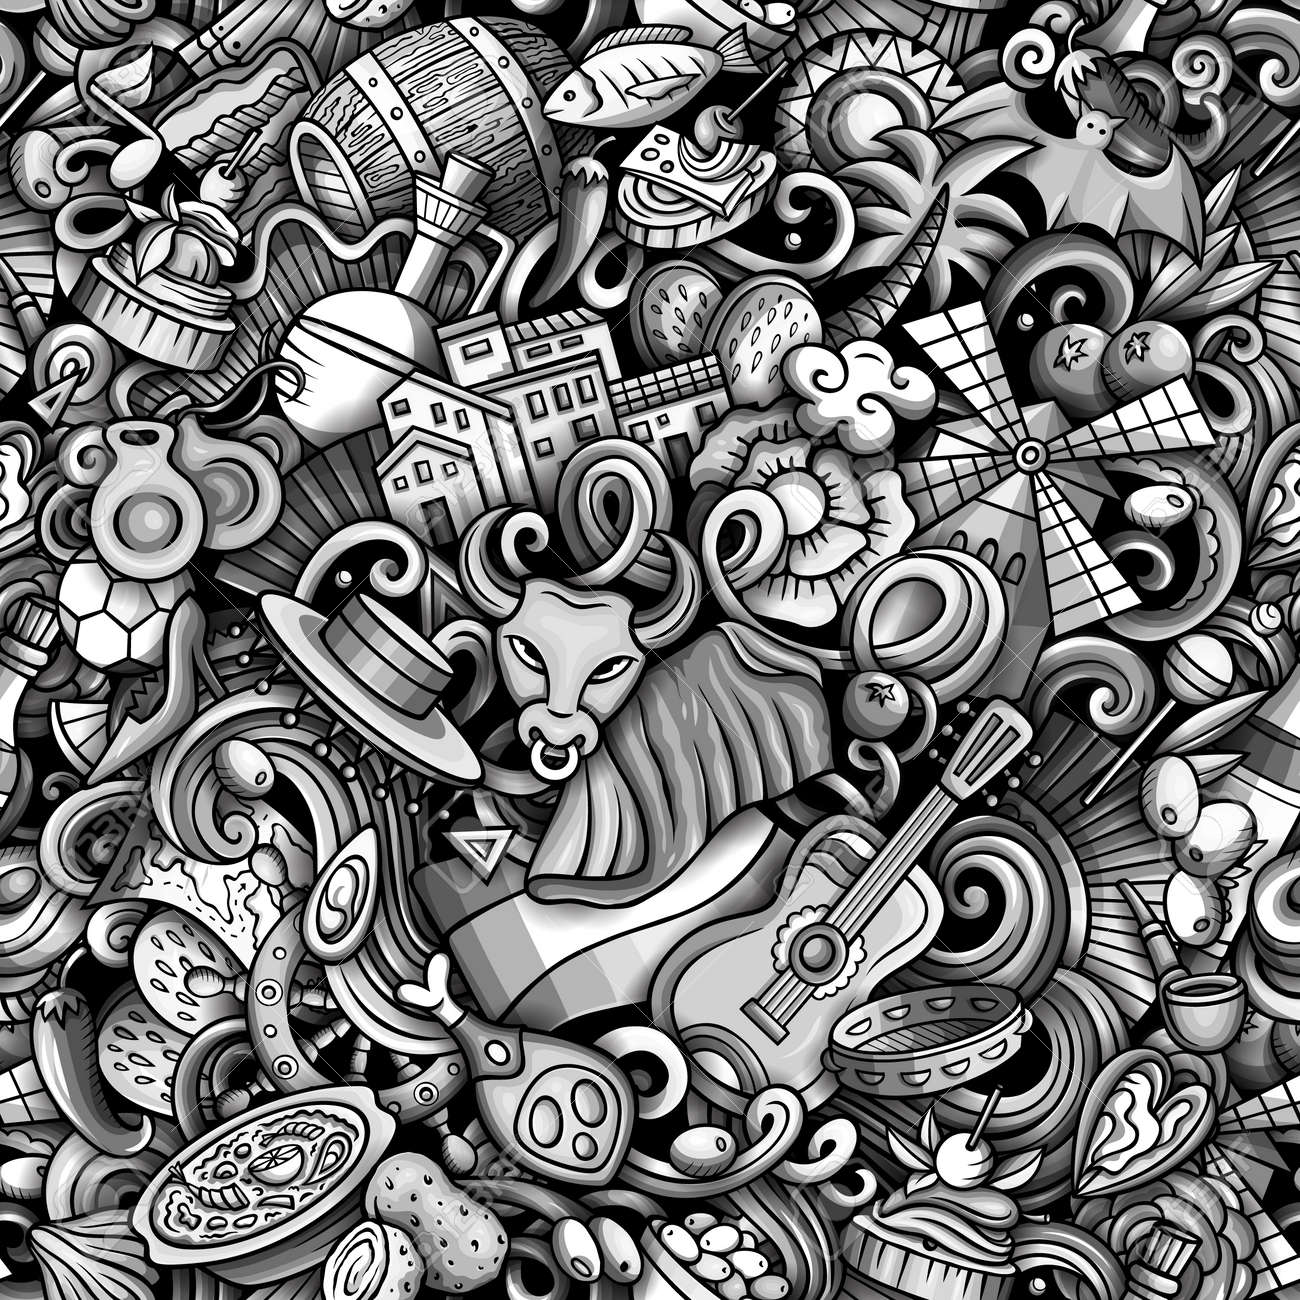 Cartoon doodles Spain seamless pattern. Backdrop with Spanish culture symbols and items. Monochrome detailed, with lots of objects background for print on fabric, textile, phone cases, wrapping paper. - 171462961